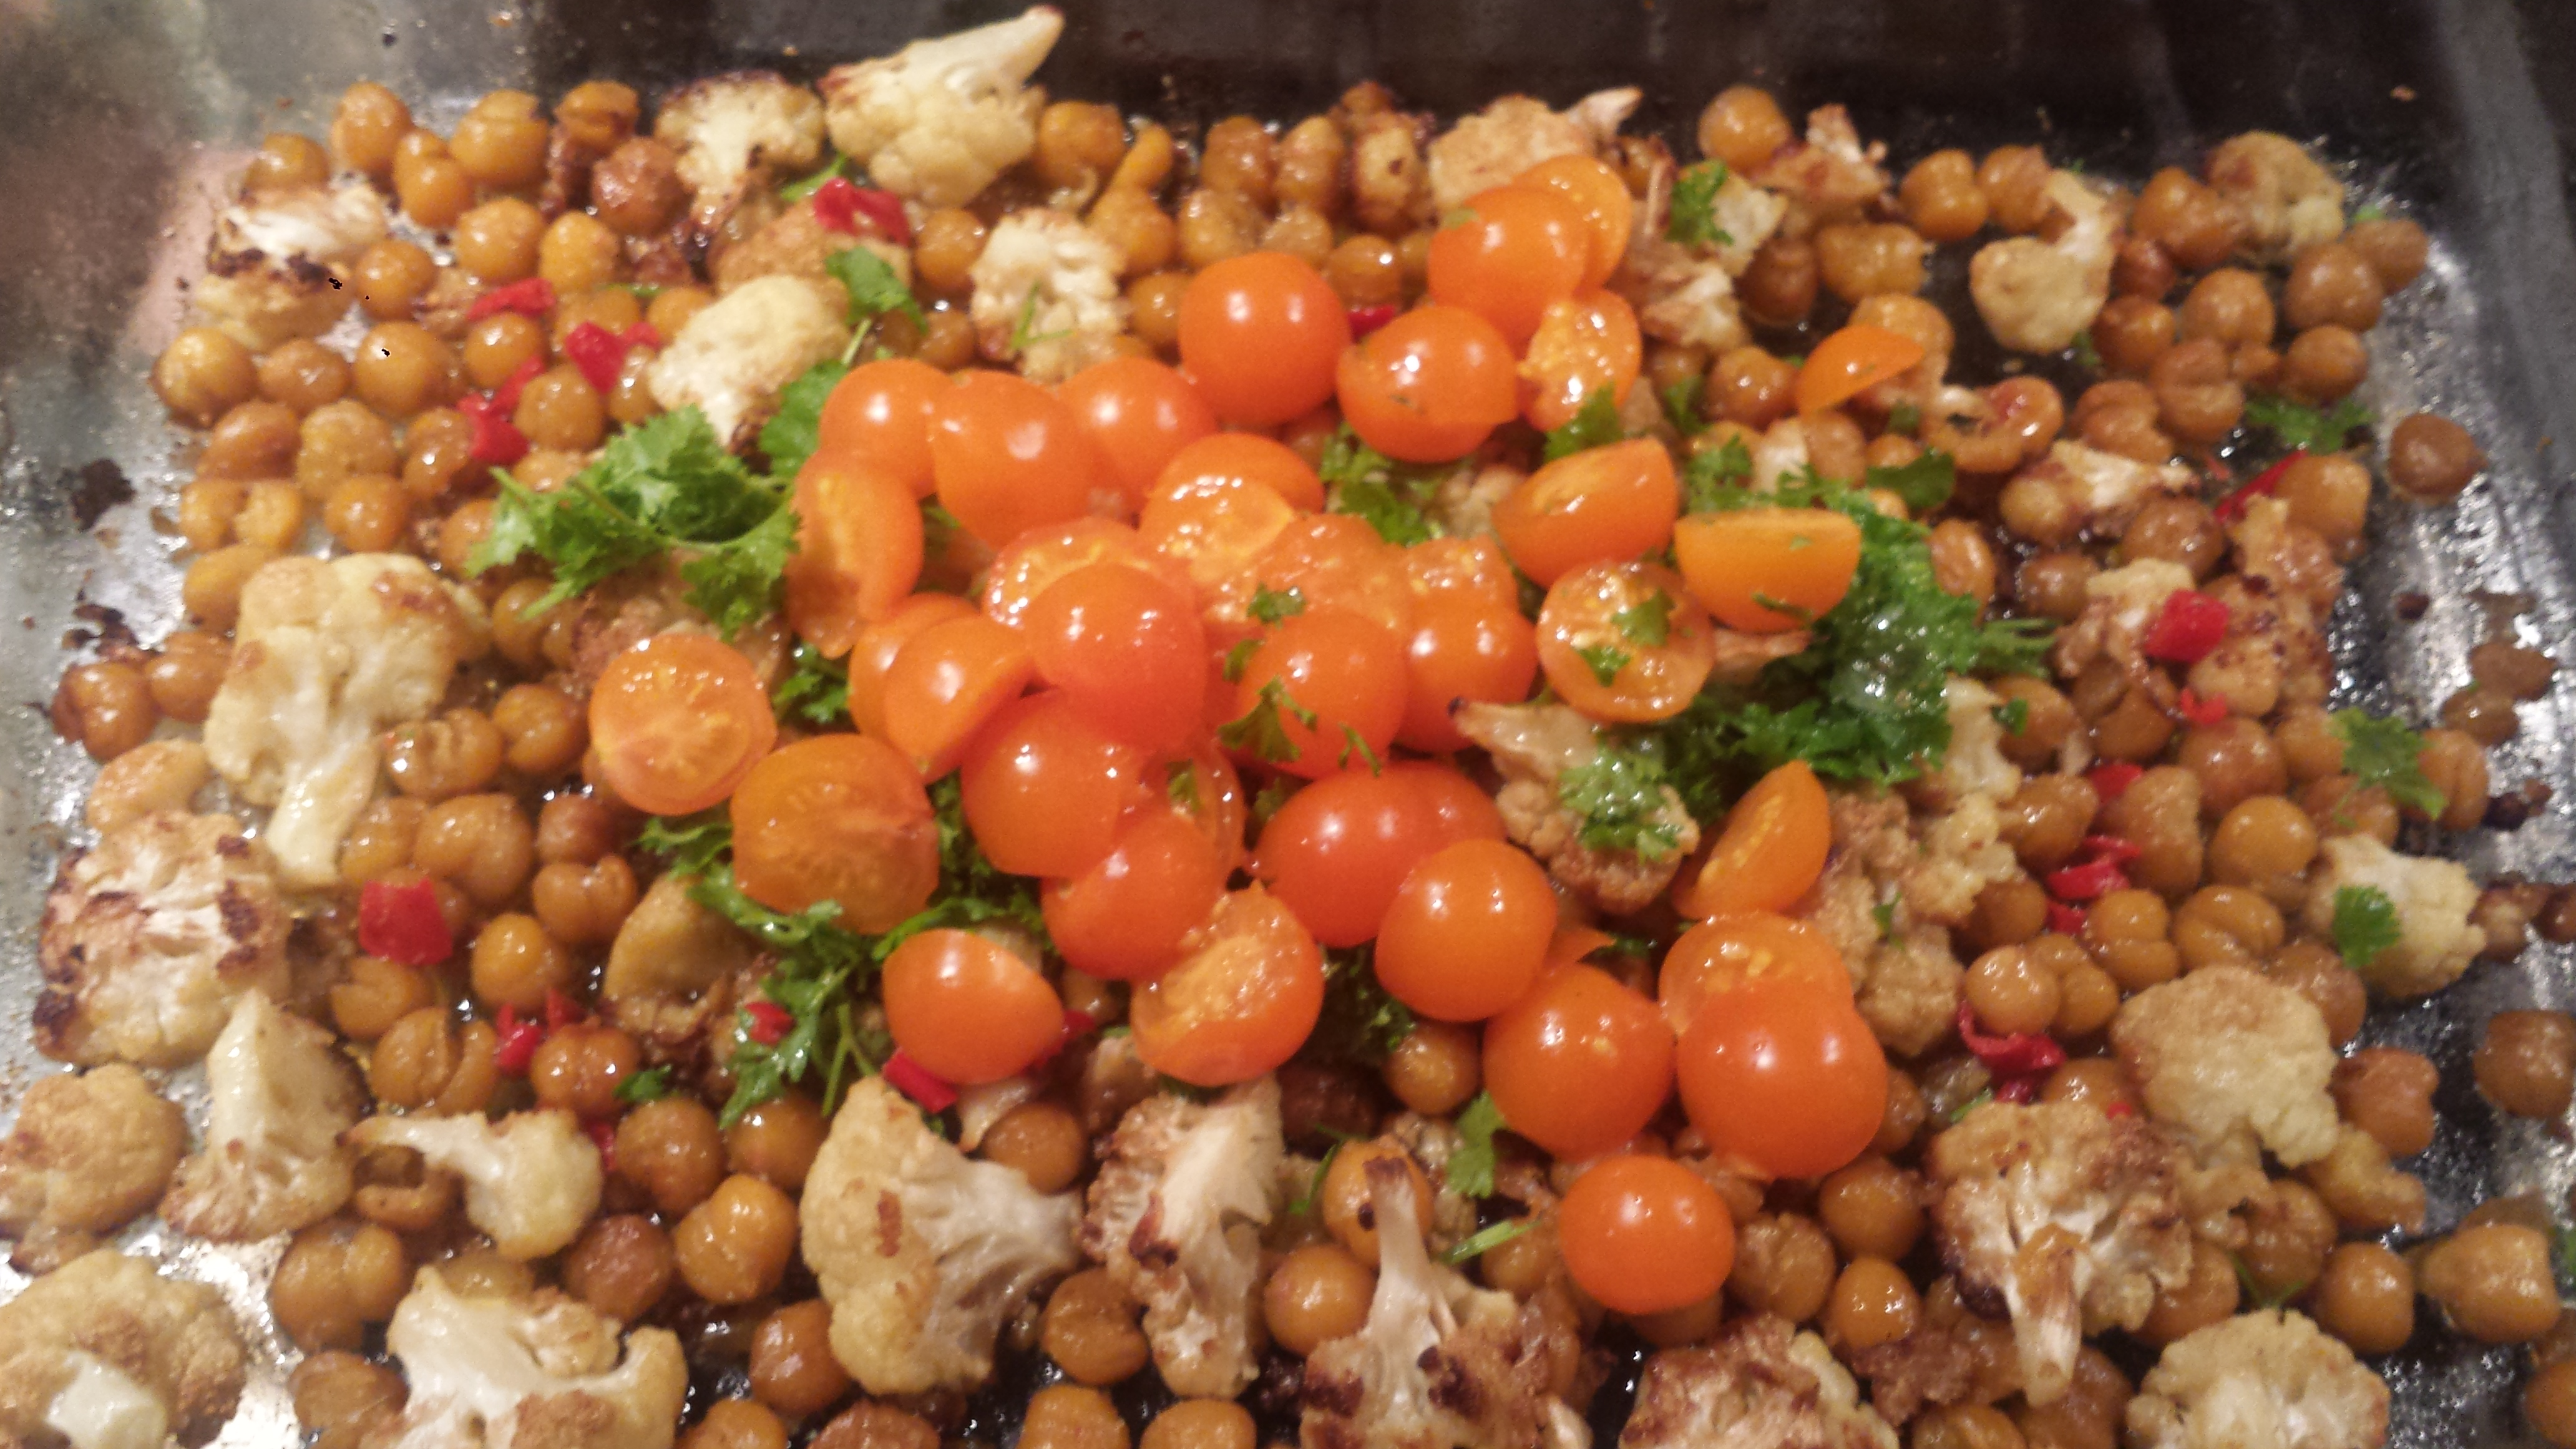 ... Wednesday – Roasted Cauliflower & Chickpeas with Tomatoes and Olives